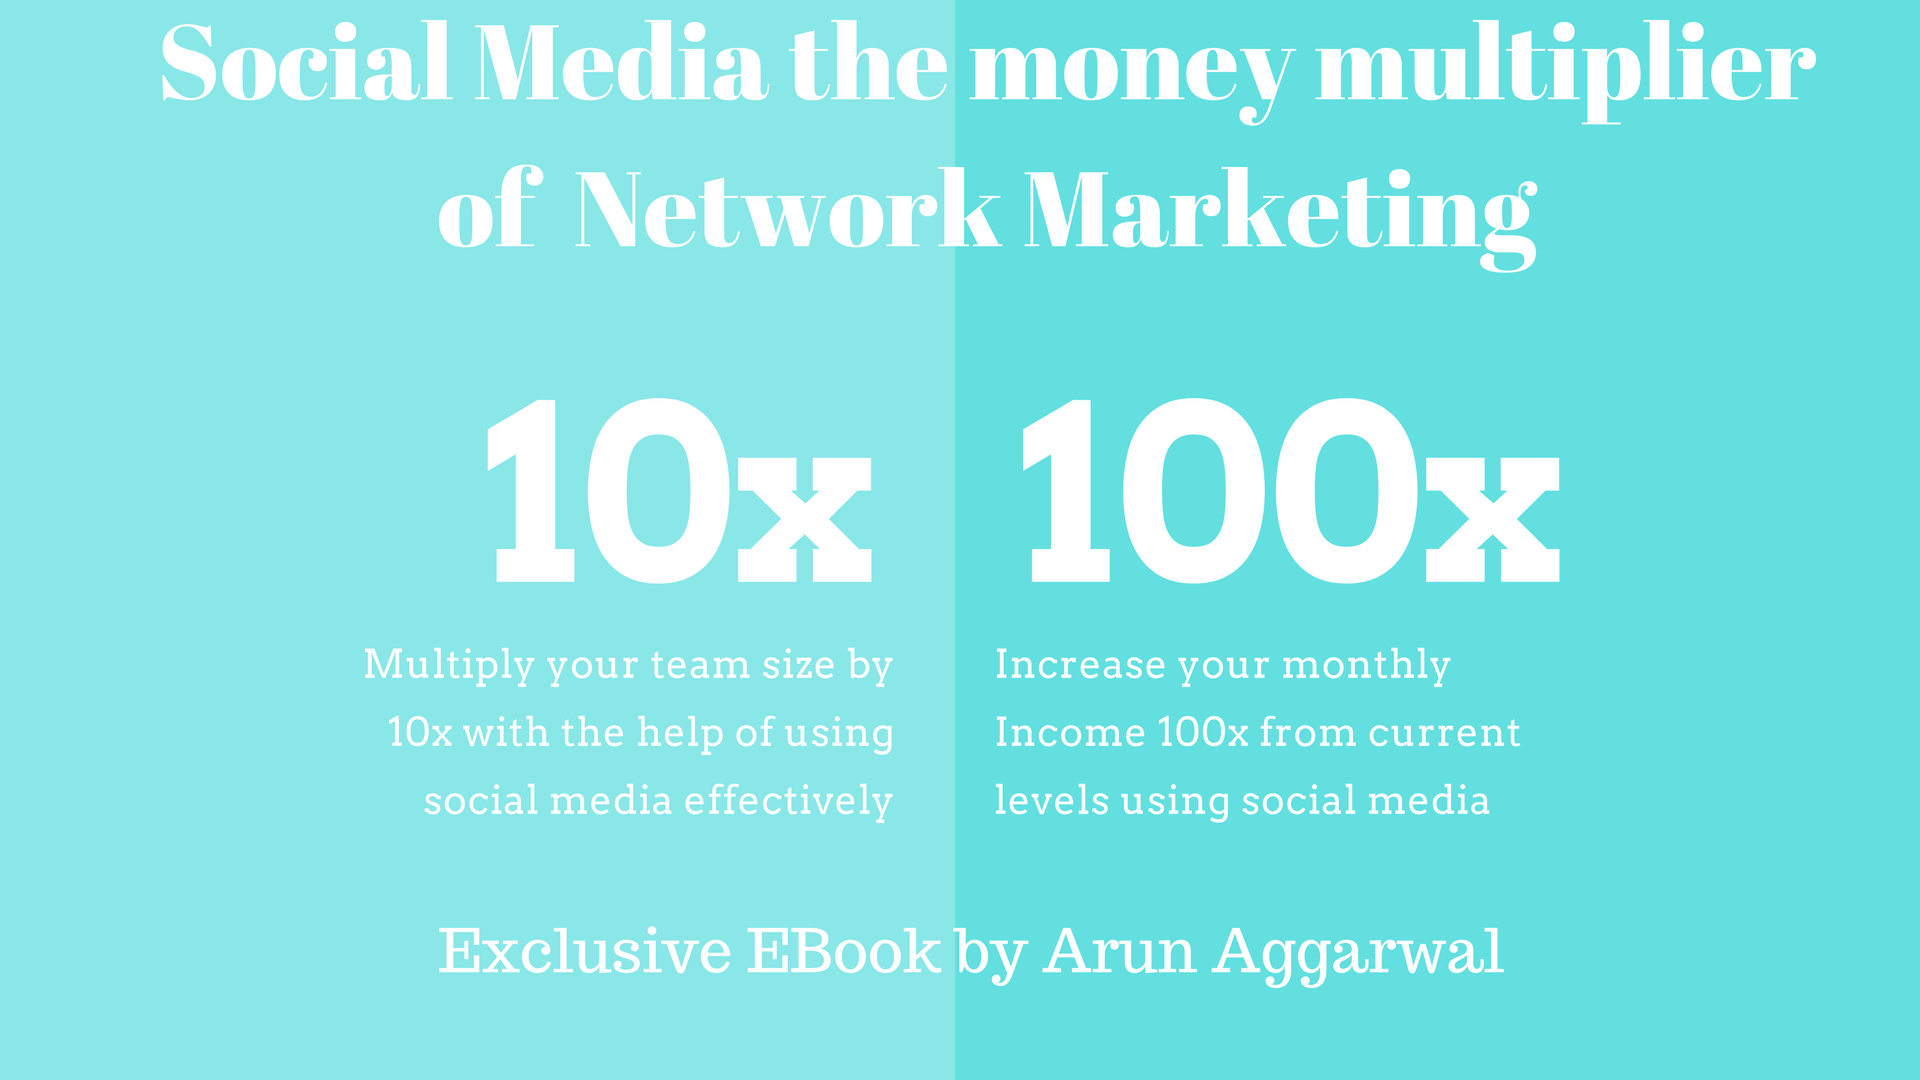 Social media the money multiplier of network marketing